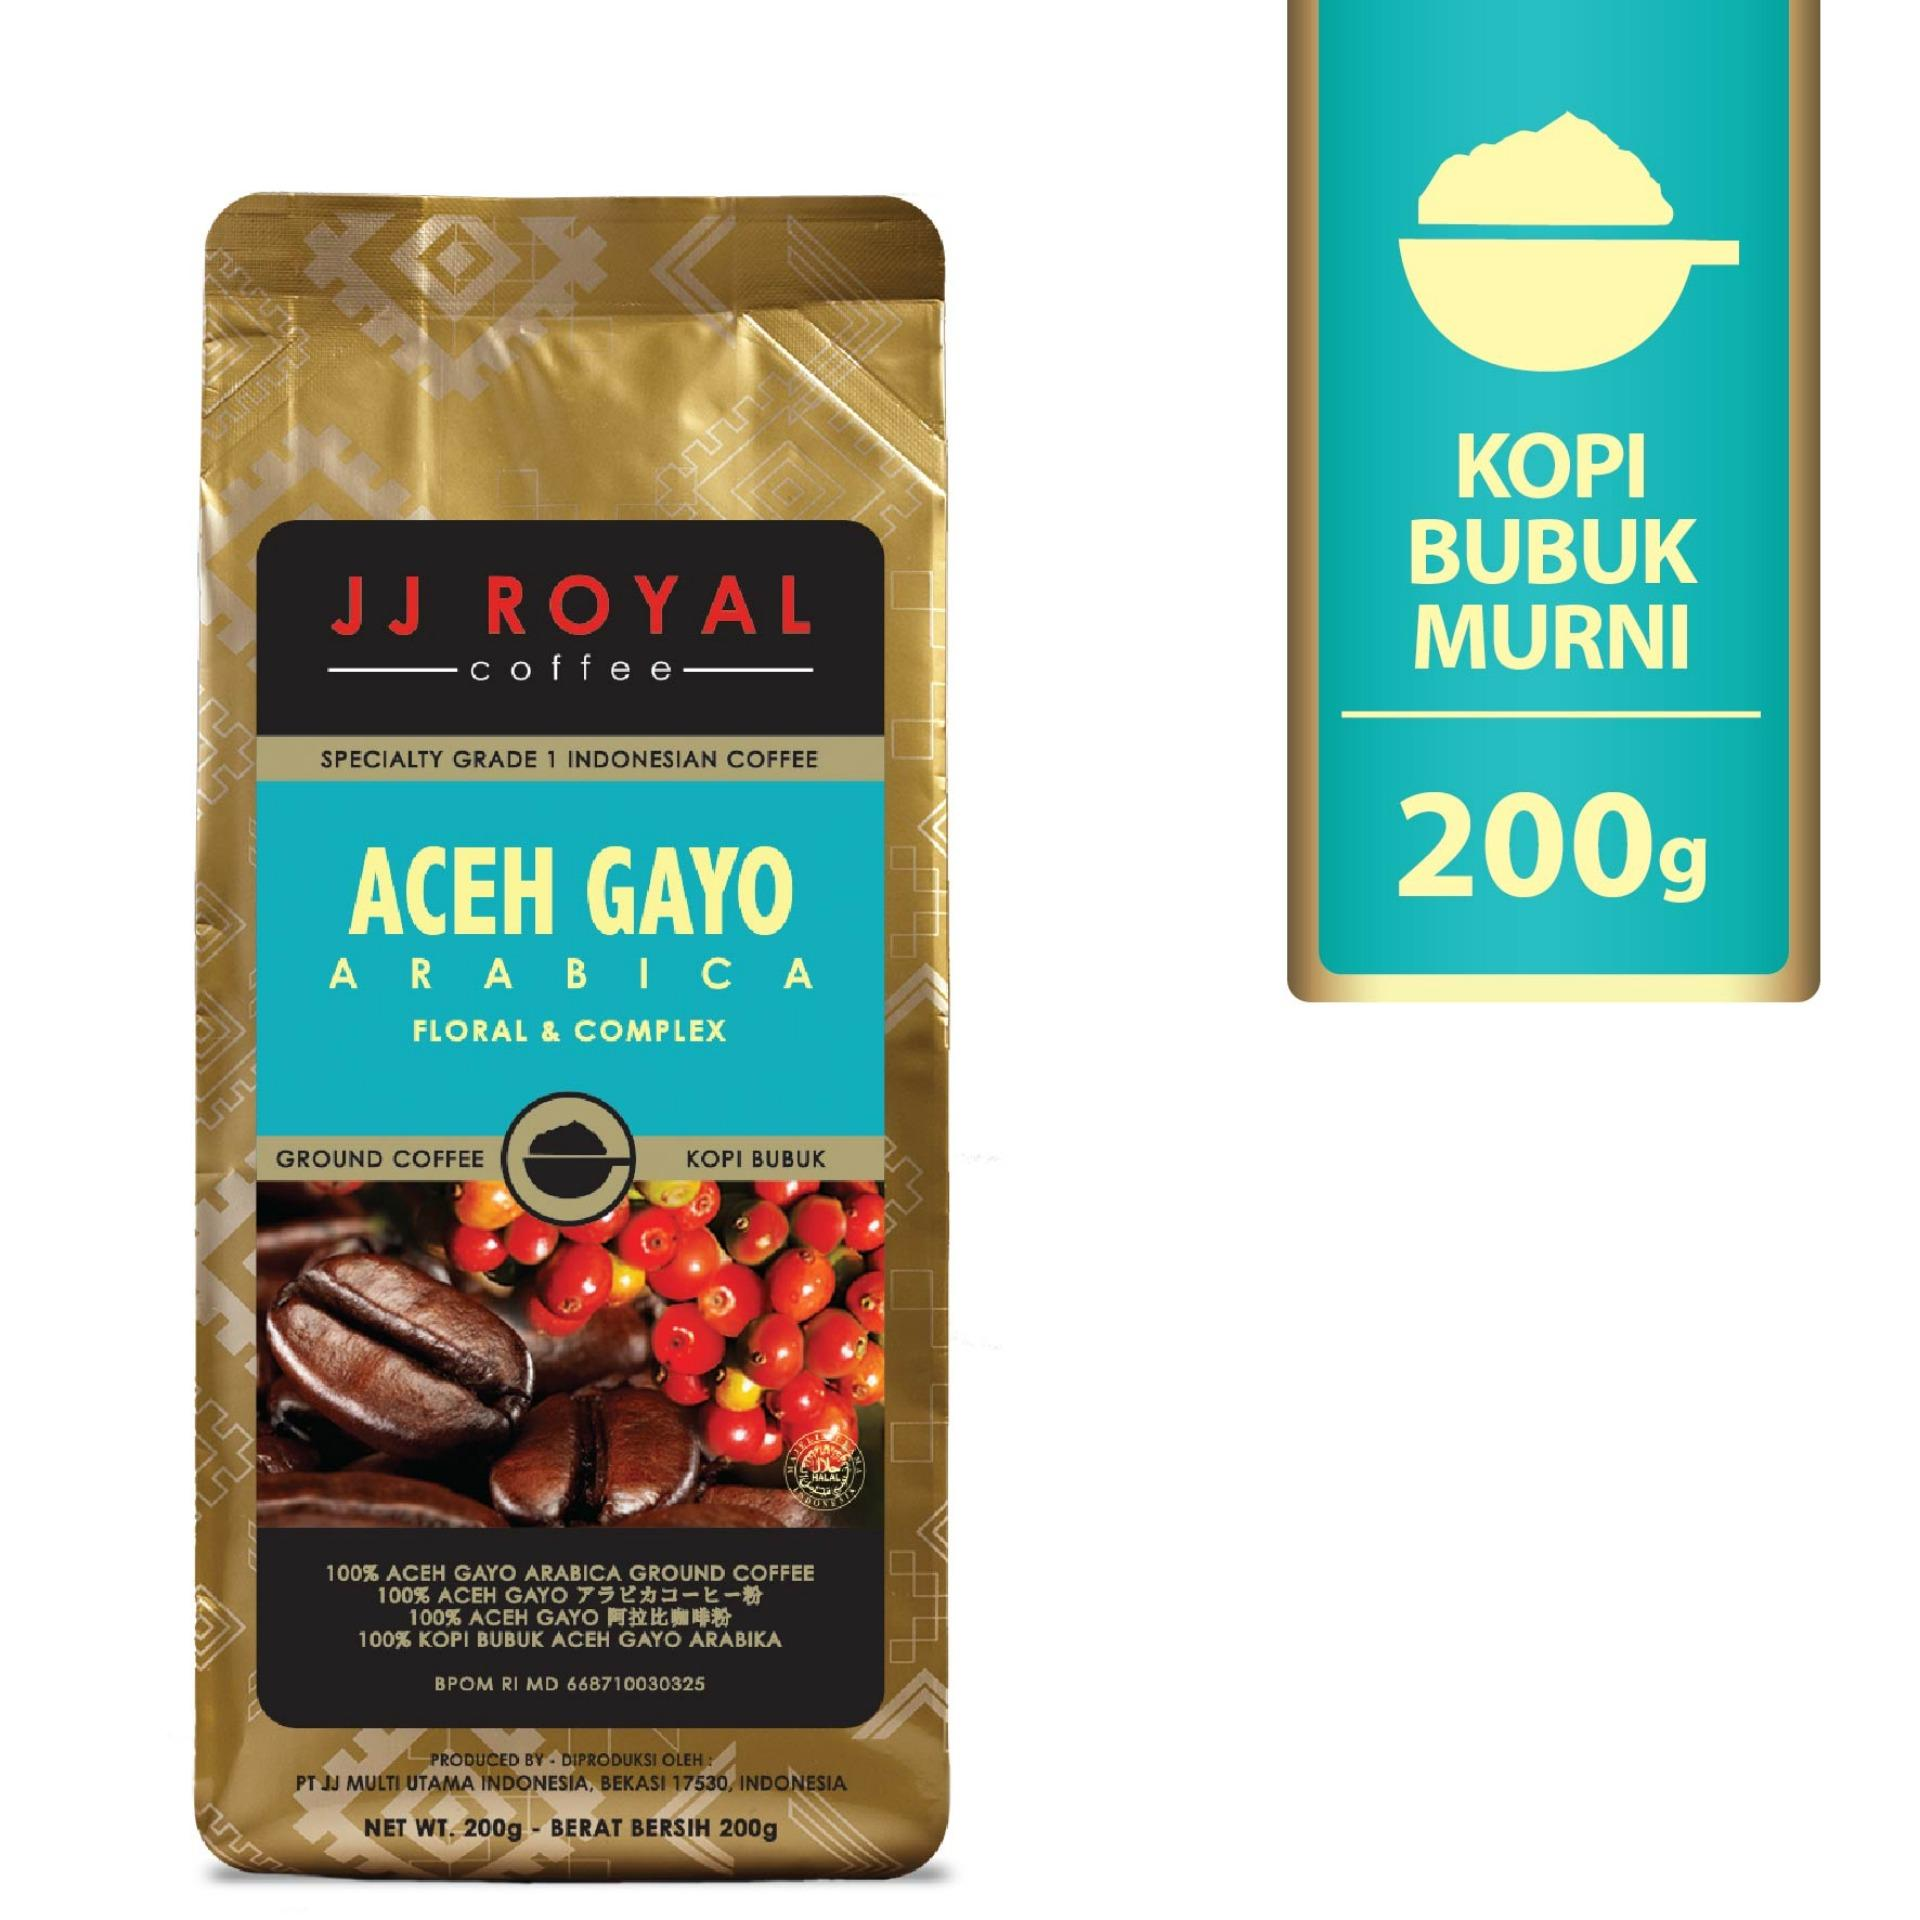 Jual Jj Royal Coffee Aceh Gayo Arabica Ground Kopi Bubuk 200Gr Jj Royal Coffee Murah